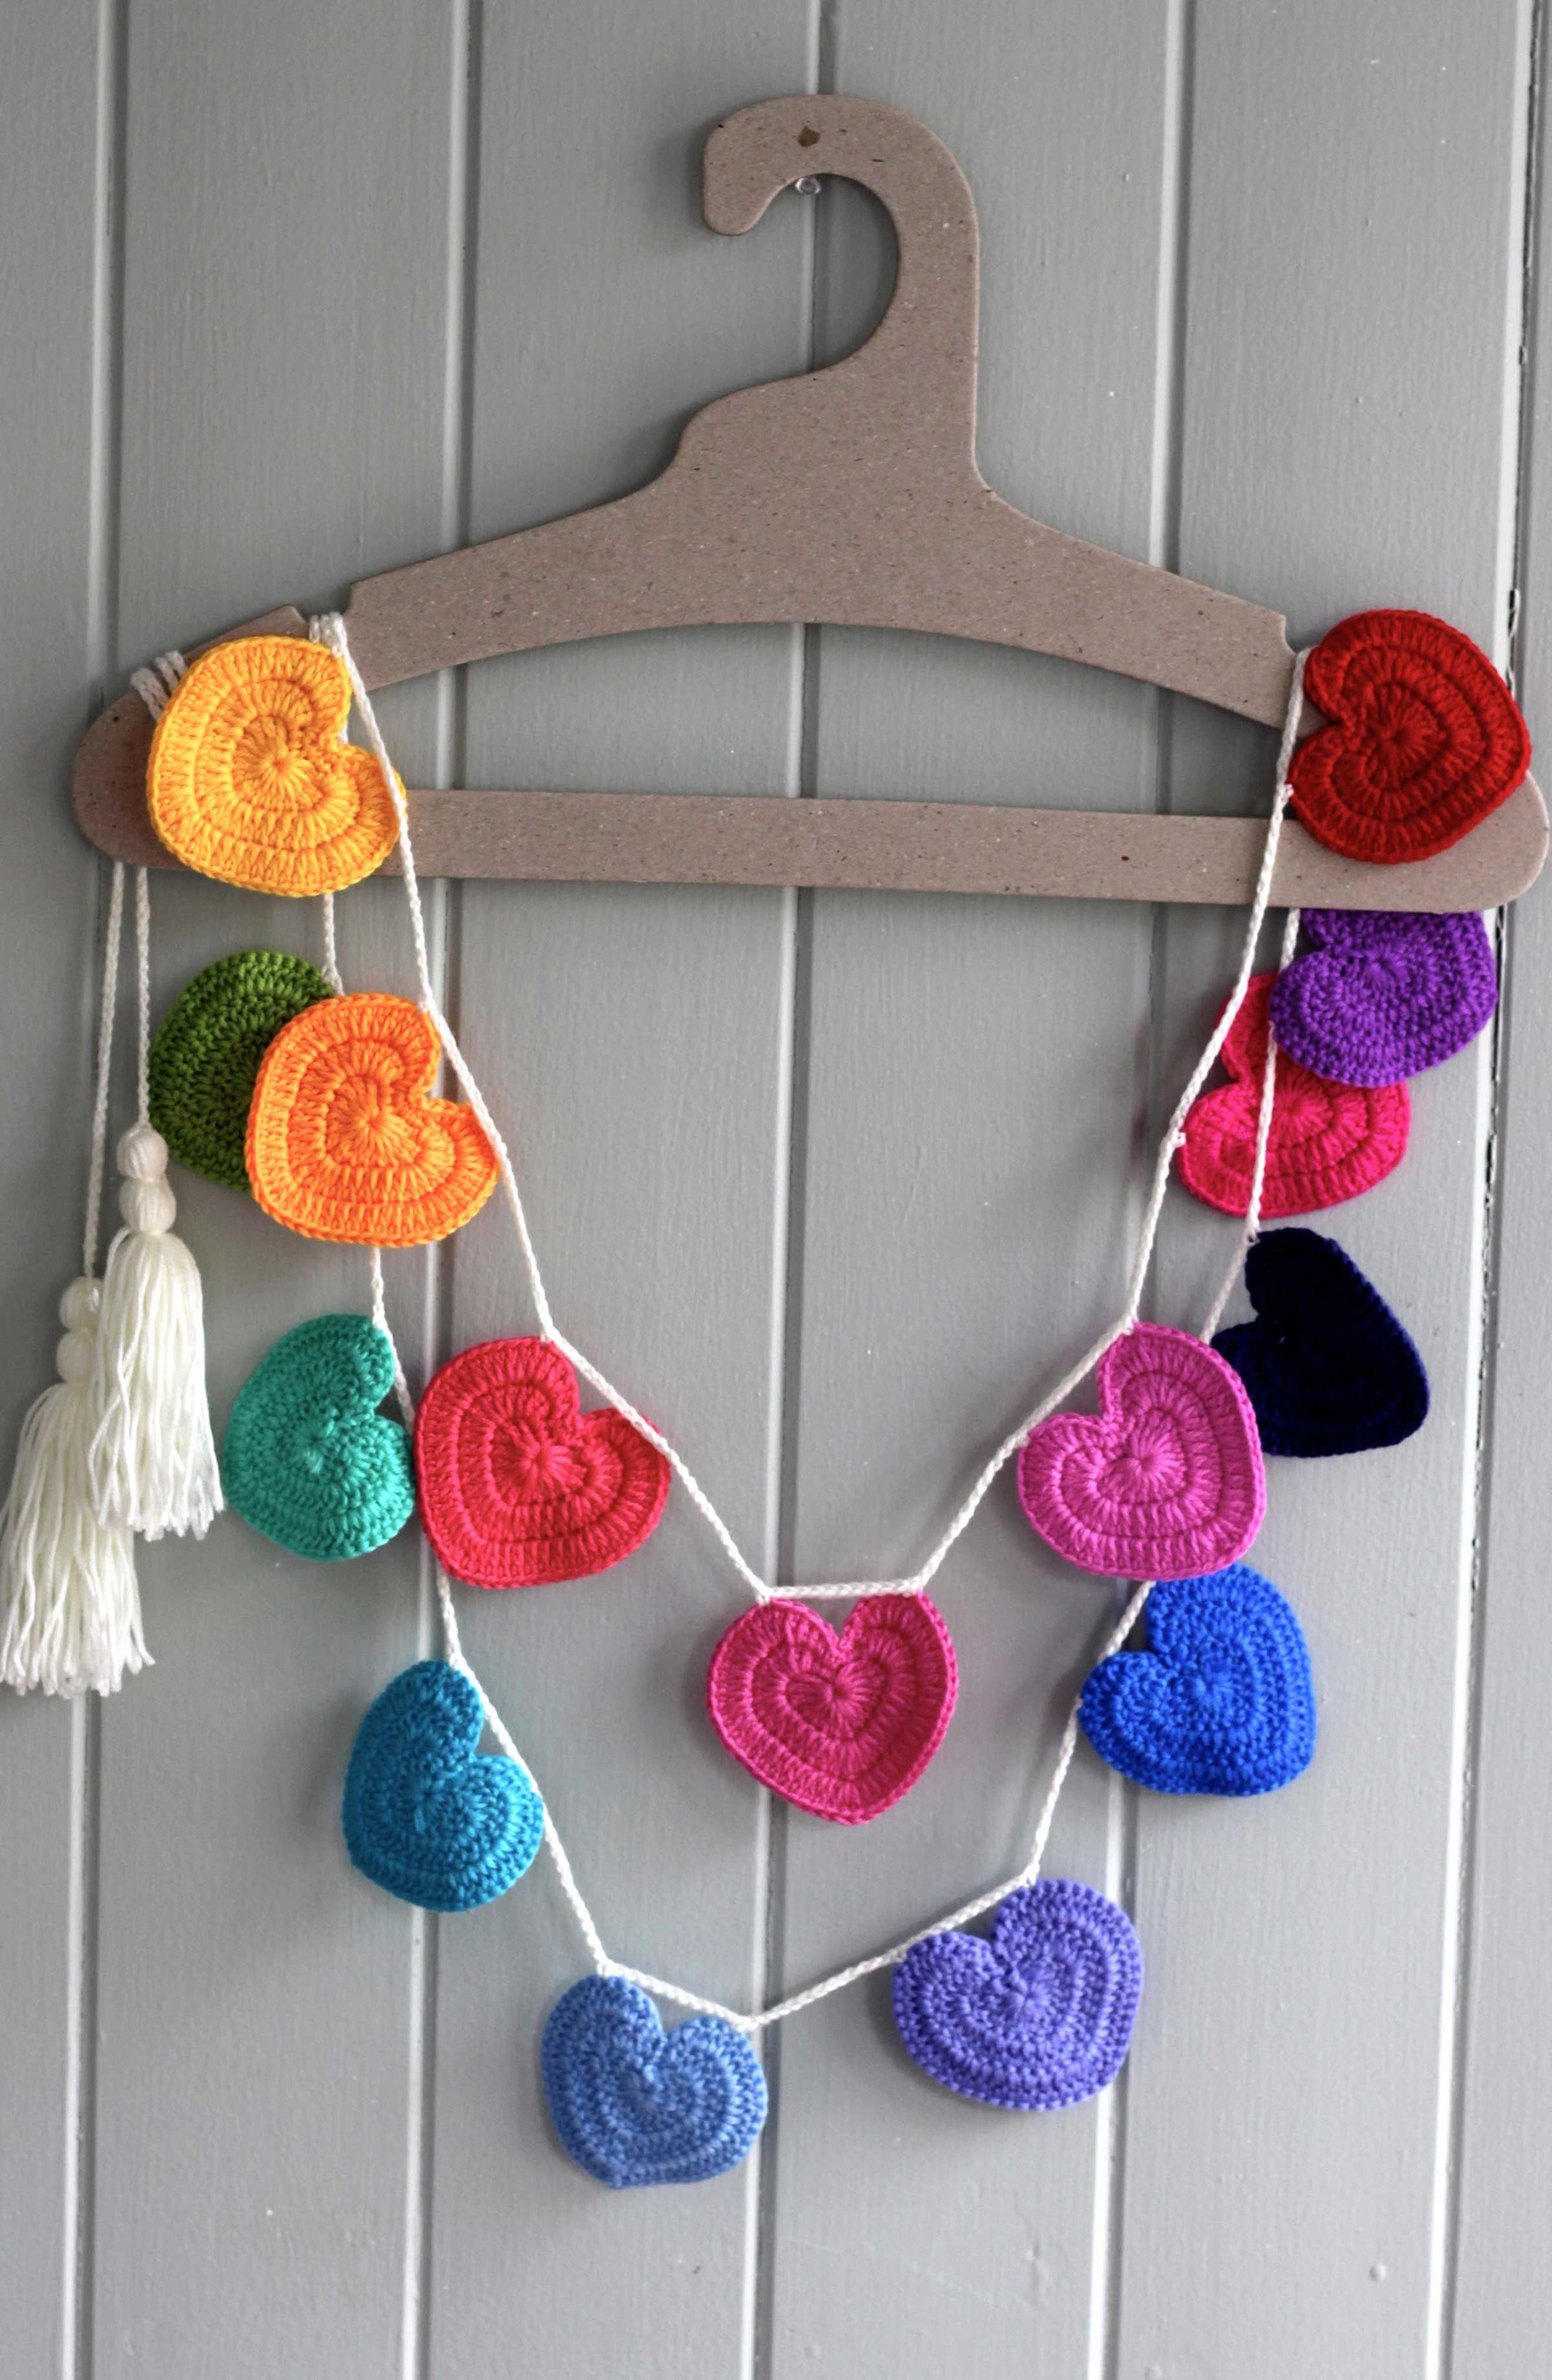 Crocheted Heart Bunting,                             Alternate thumbnail 5, color,                             Rainbow